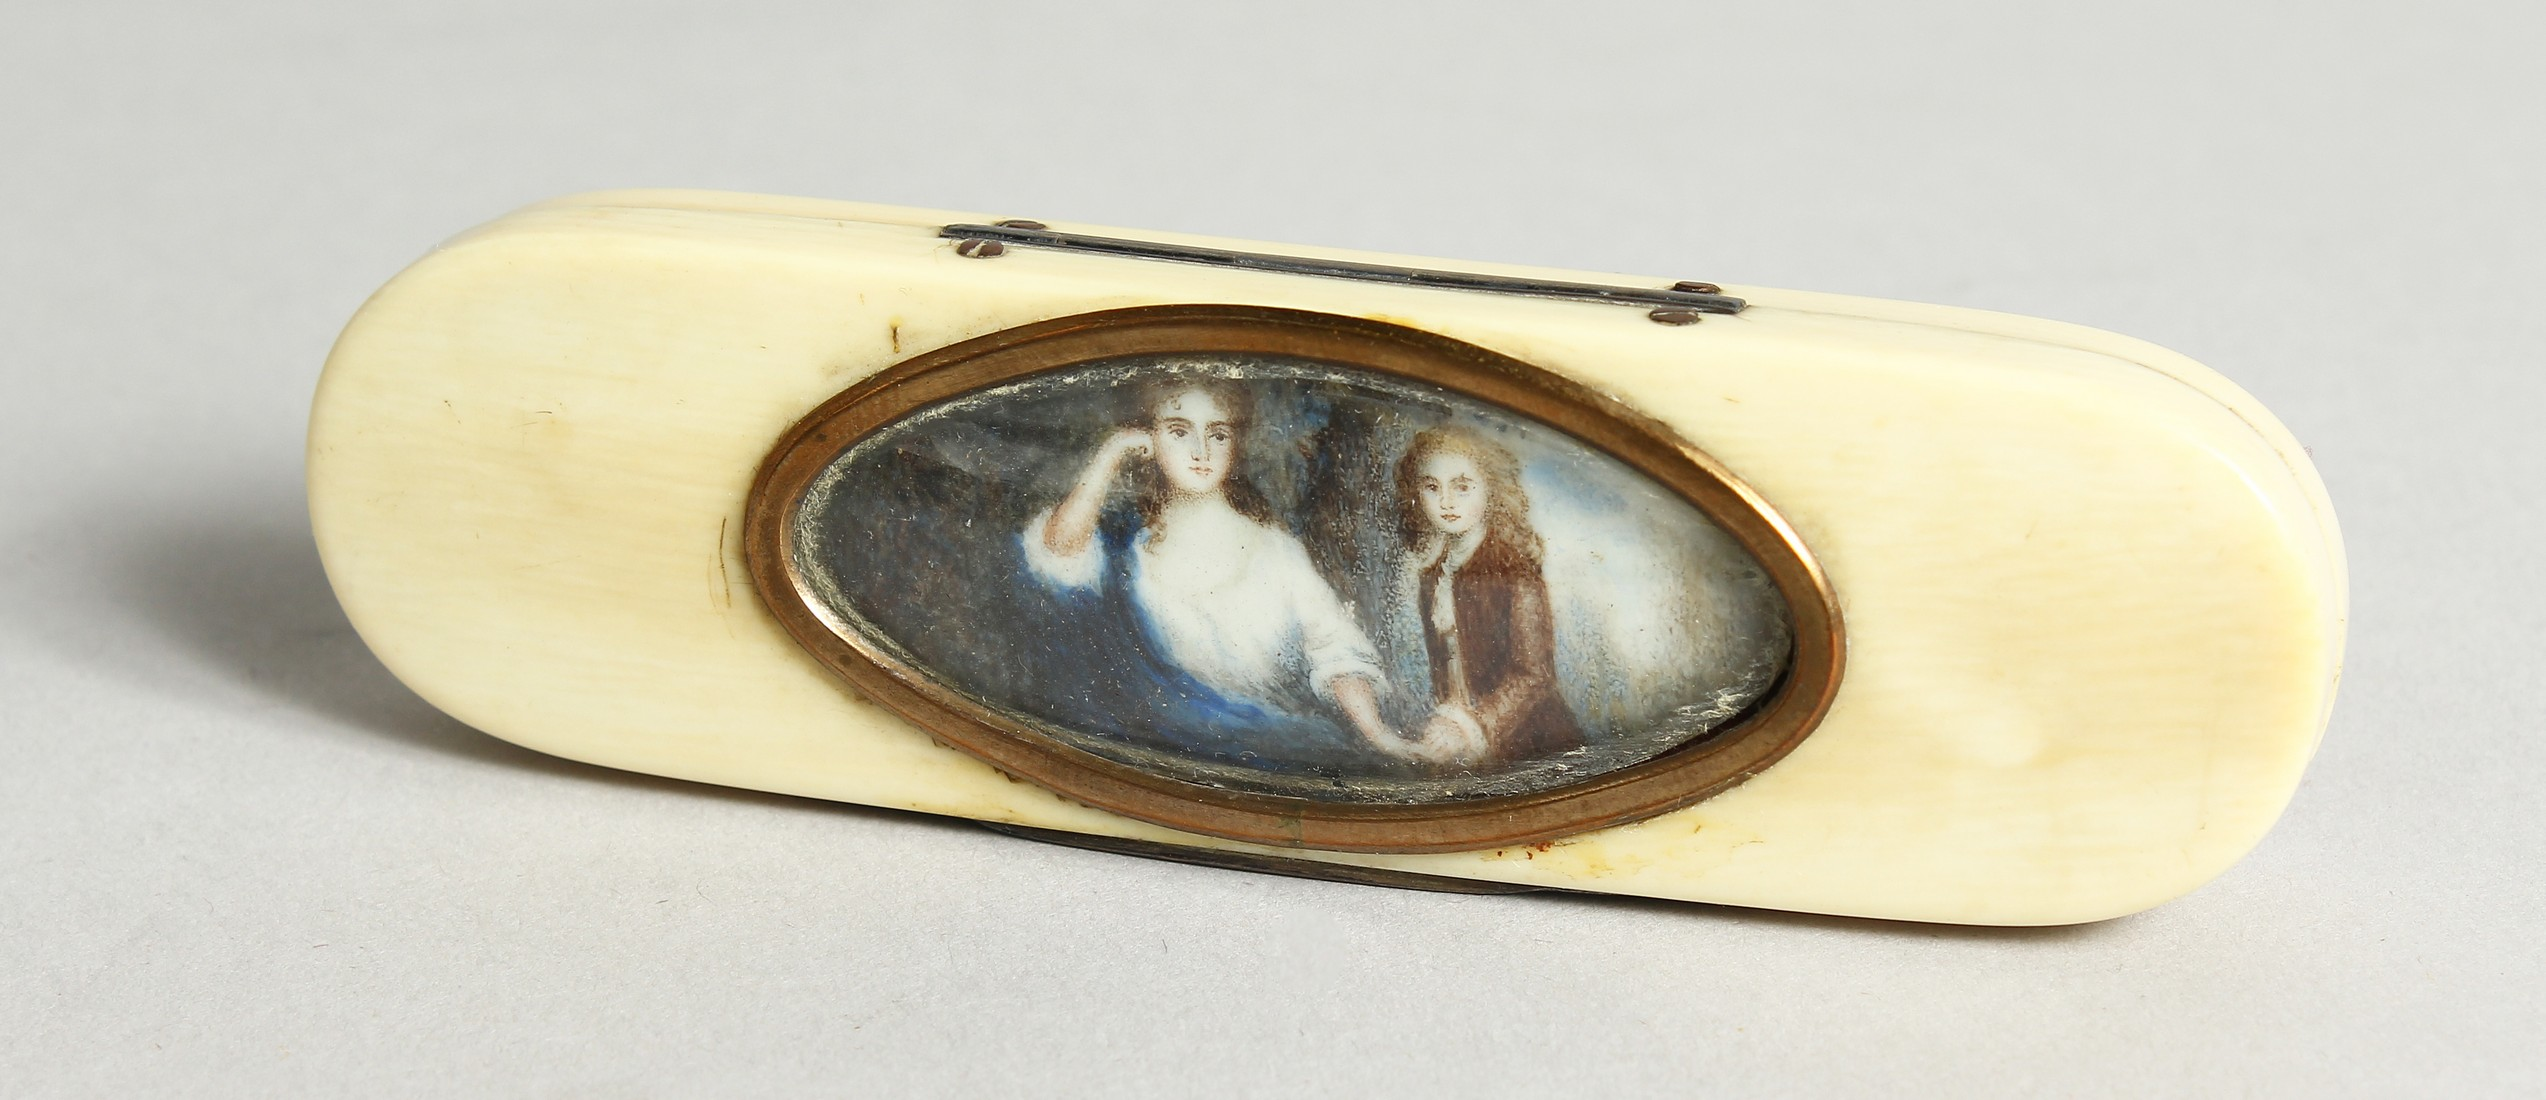 A GEORGIAN IVORY LONG PINBOX, the top with an oval, lady and young boy. 4ins long.